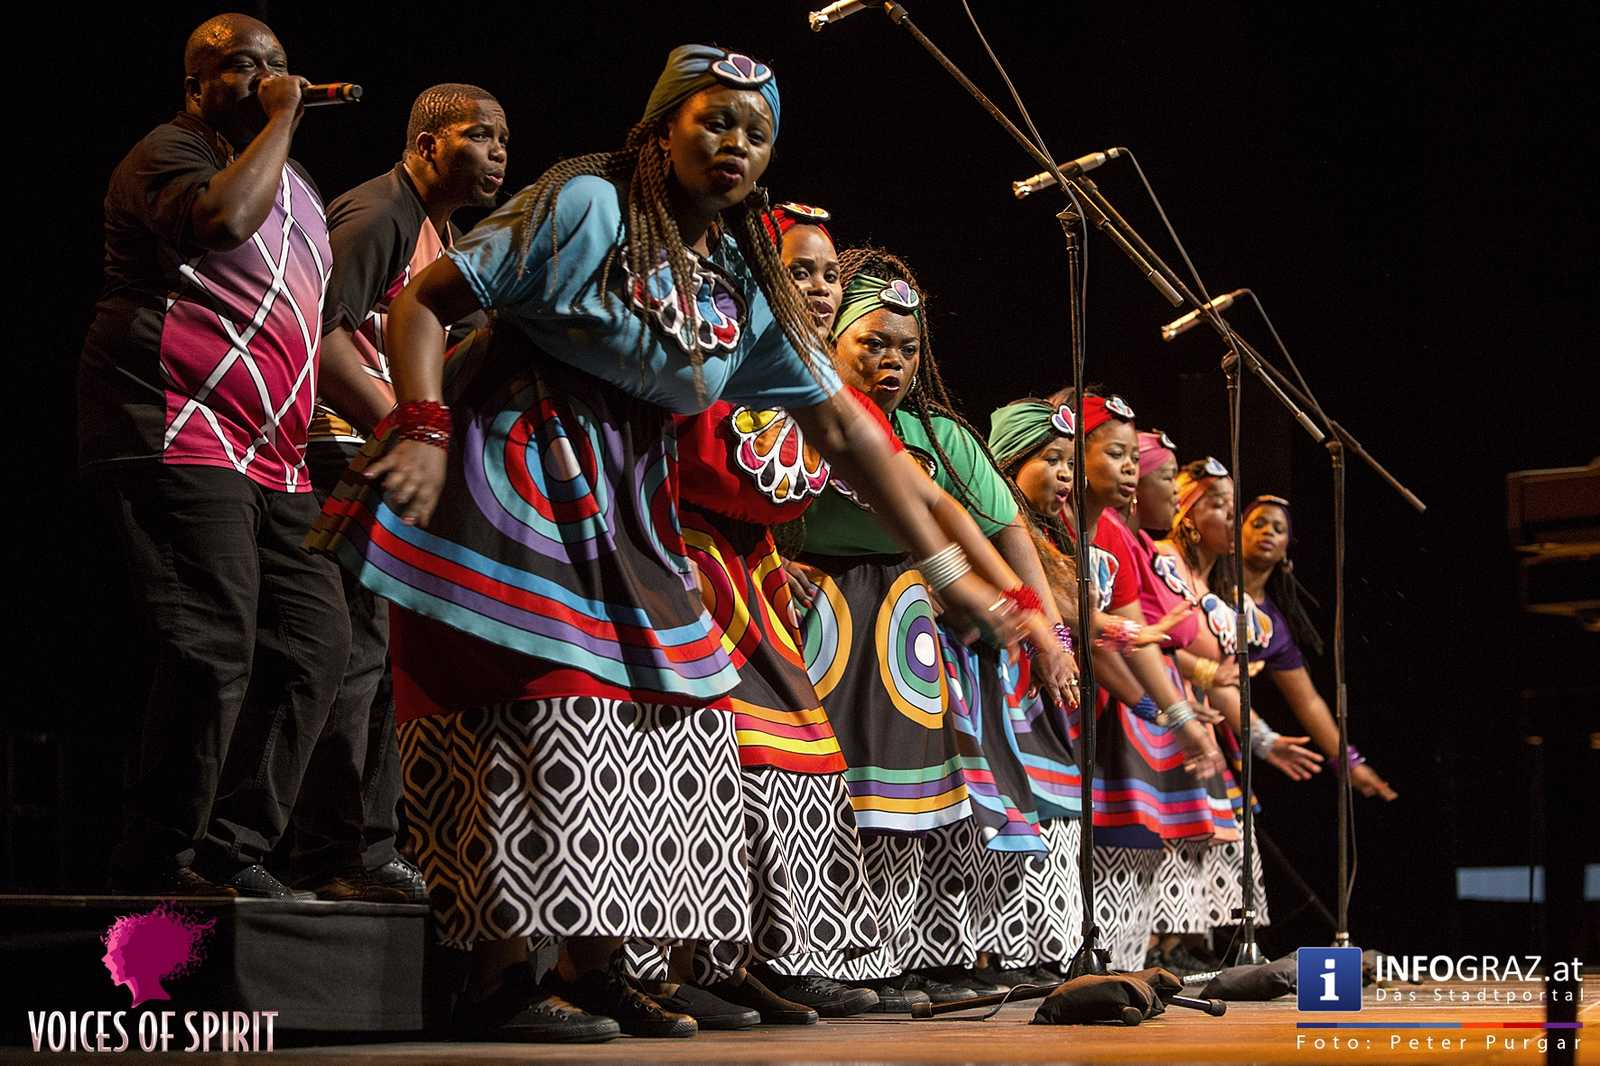 soweto gospel choir internationales chorfestival statdthalle graz voices of spirit eroeffnung festivals 2016 028